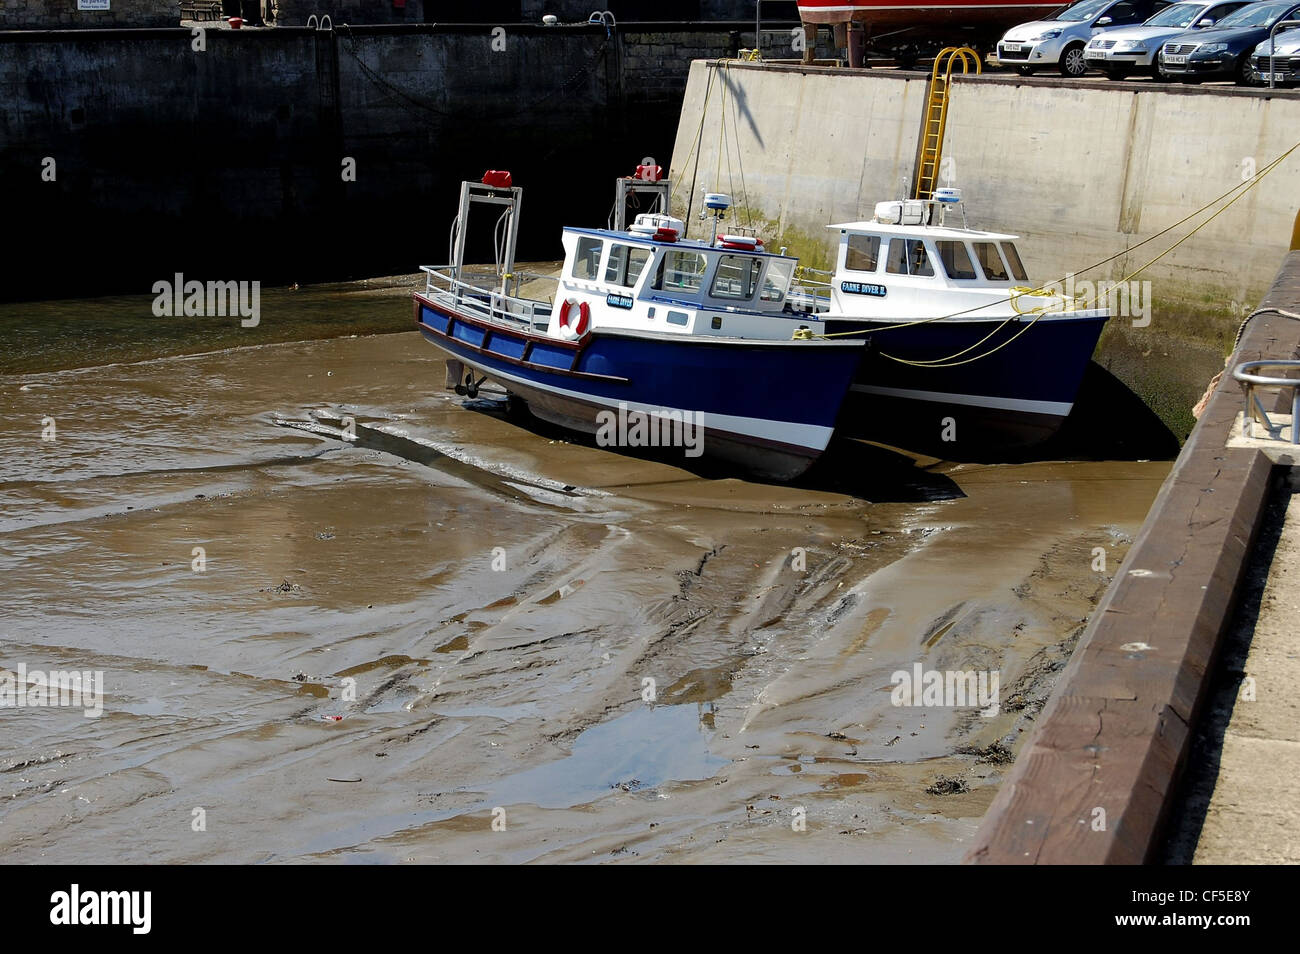 Tour boats resting on bottom of Seahouses Harbour, Northumberland at low tide - Stock Image